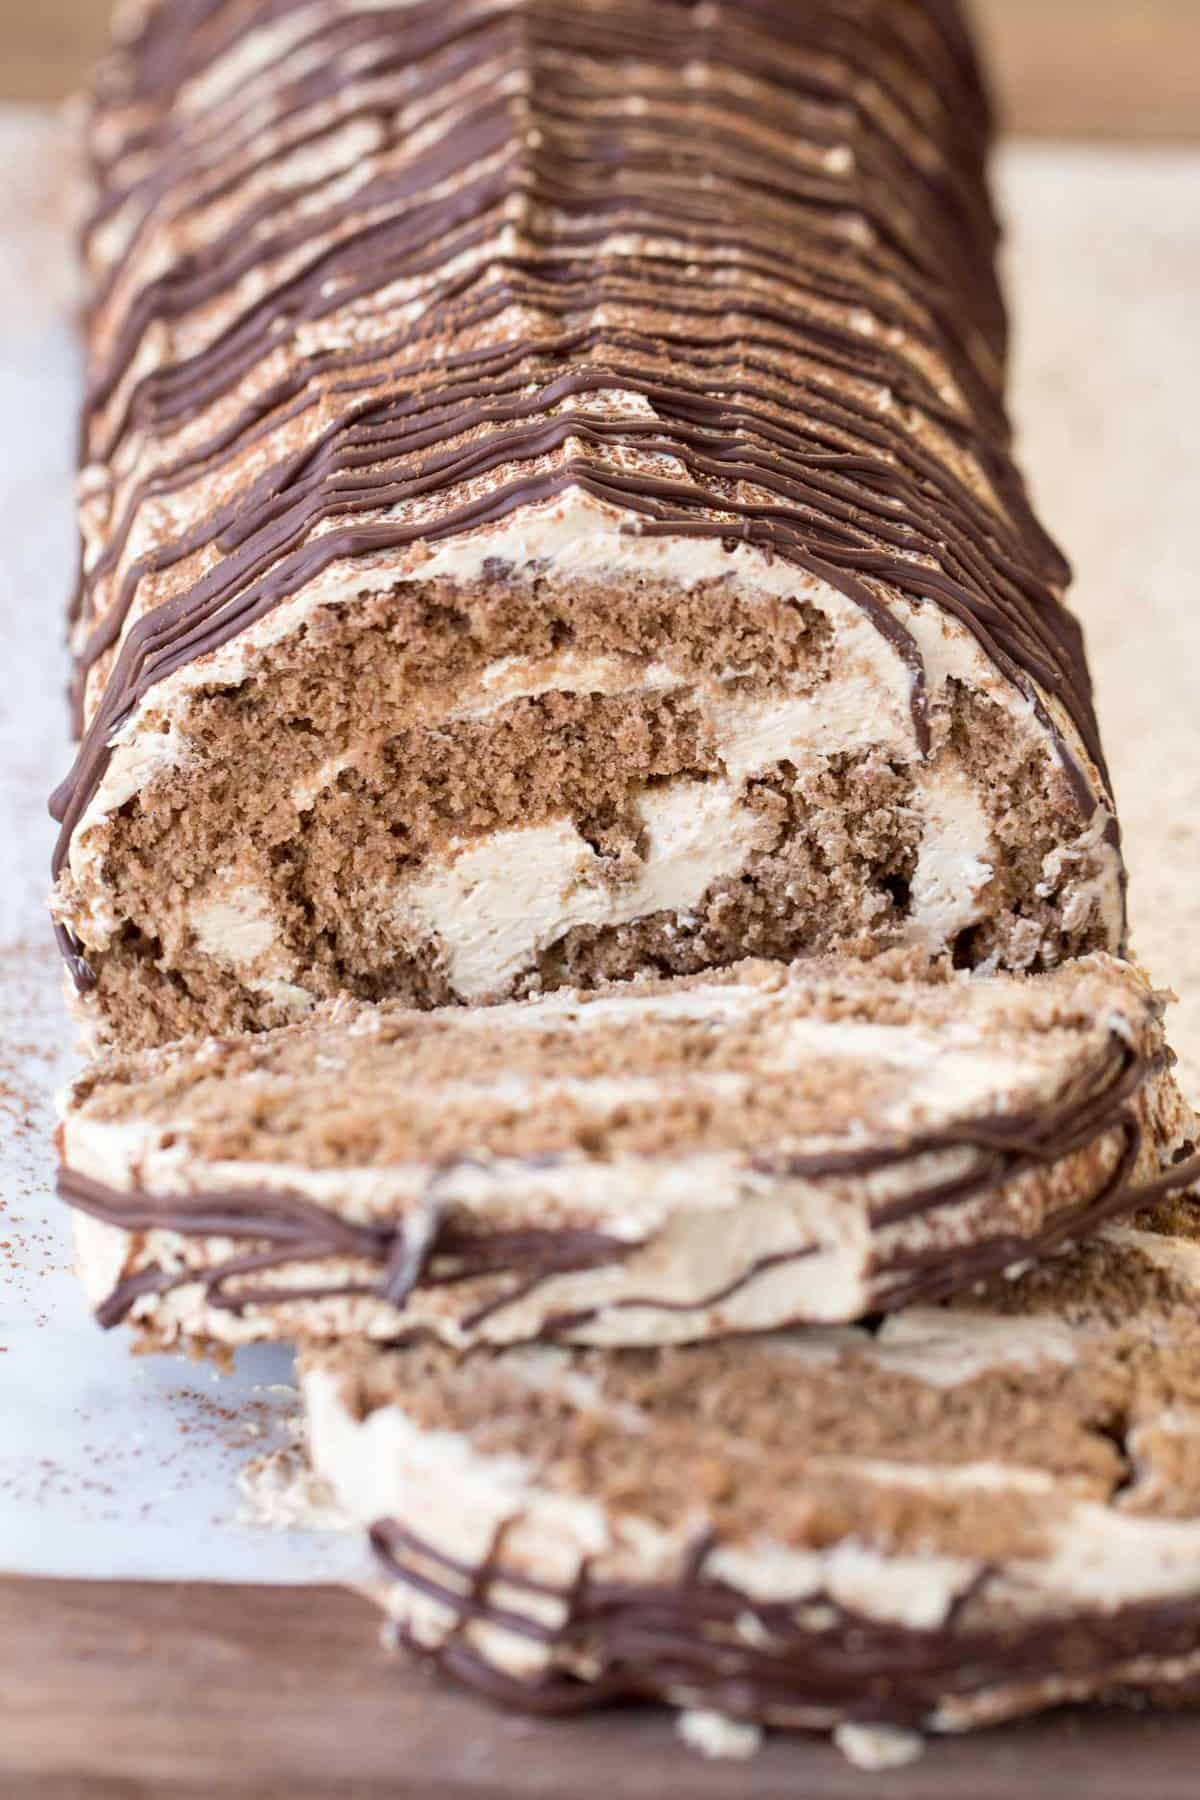 Chocolate Coffee Roulade pieces with chocolate drizzle.